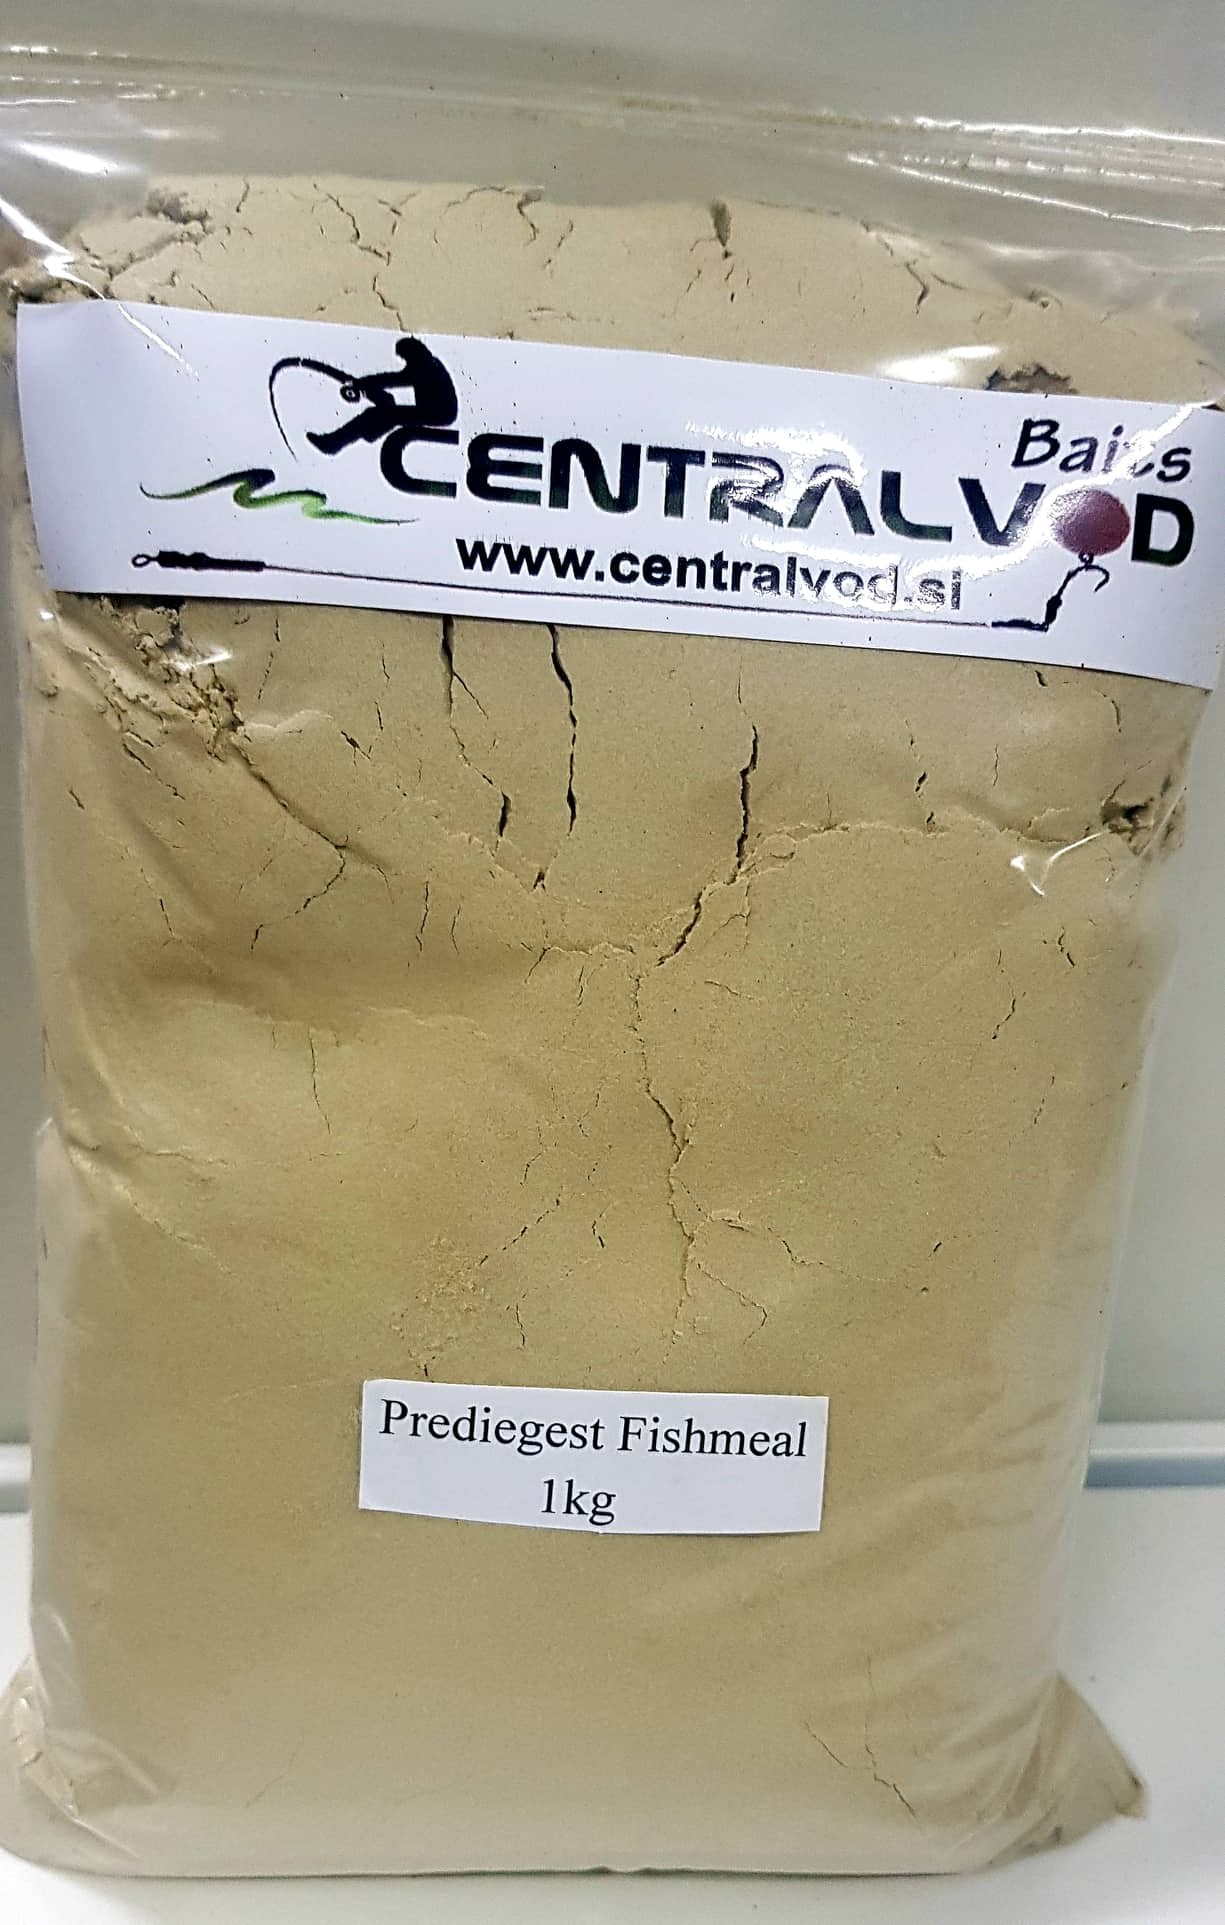 Prediegest Fishmeal Centralvod Baits 1kg